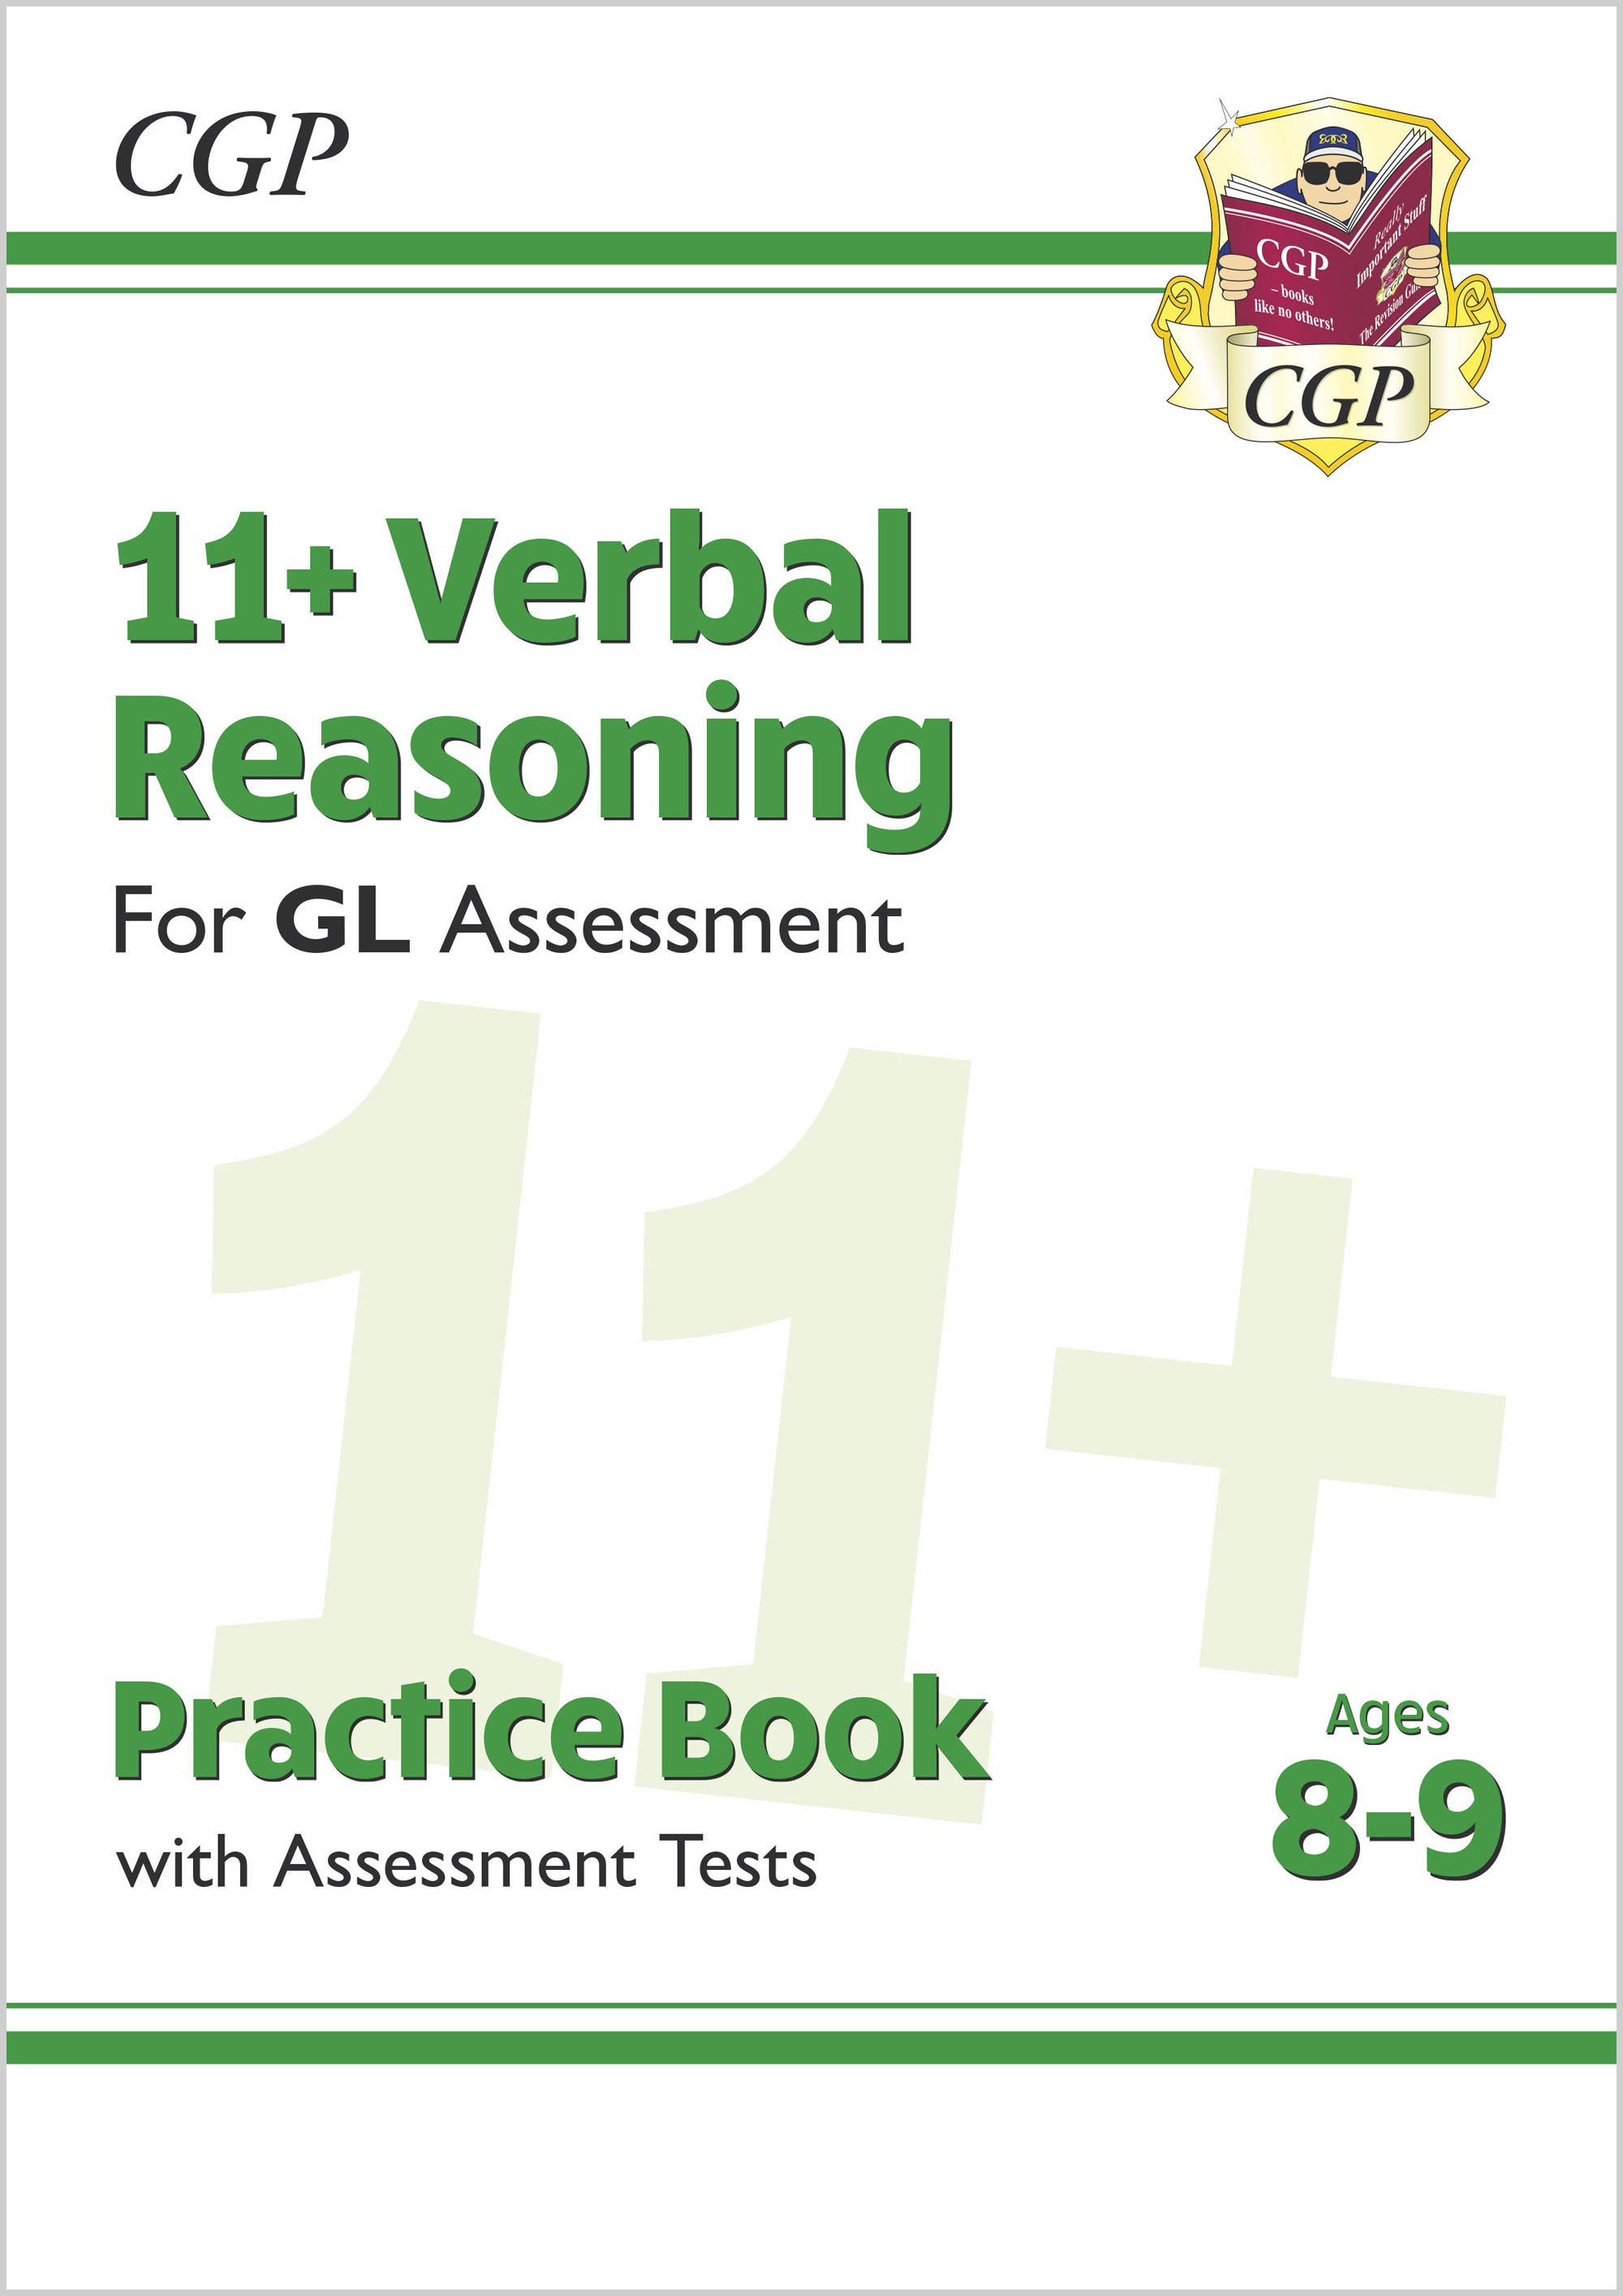 V4QE2DK - New 11+ GL Verbal Reasoning Practice Book & Assessment Tests - Ages 8-9